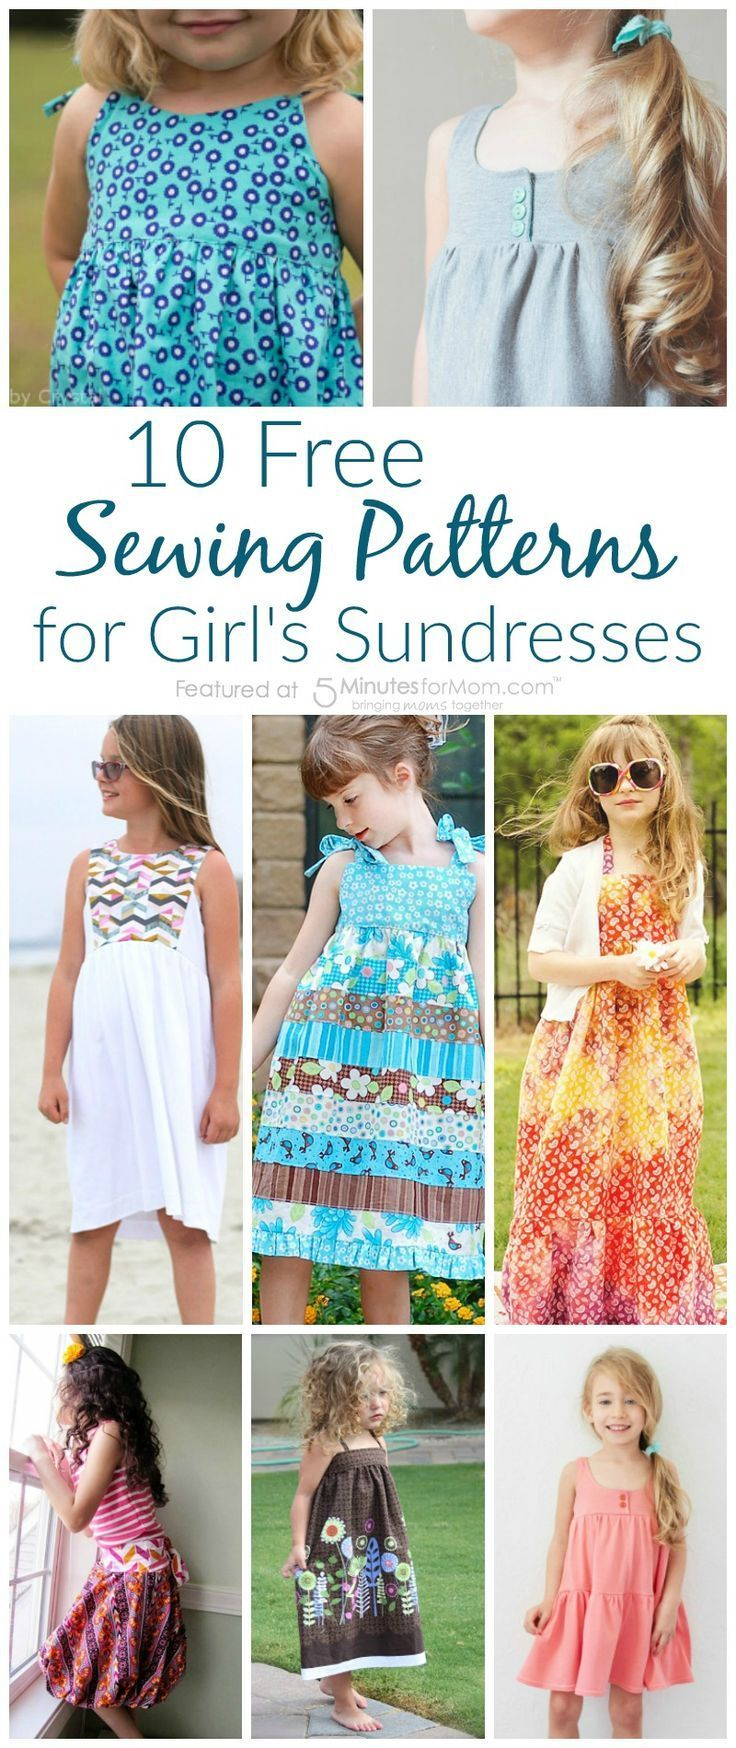 10 fabulous and free sewing patterns for girls sundresses girls 10 fabulous and free sewing patterns for girls sundresses jeuxipadfo Gallery